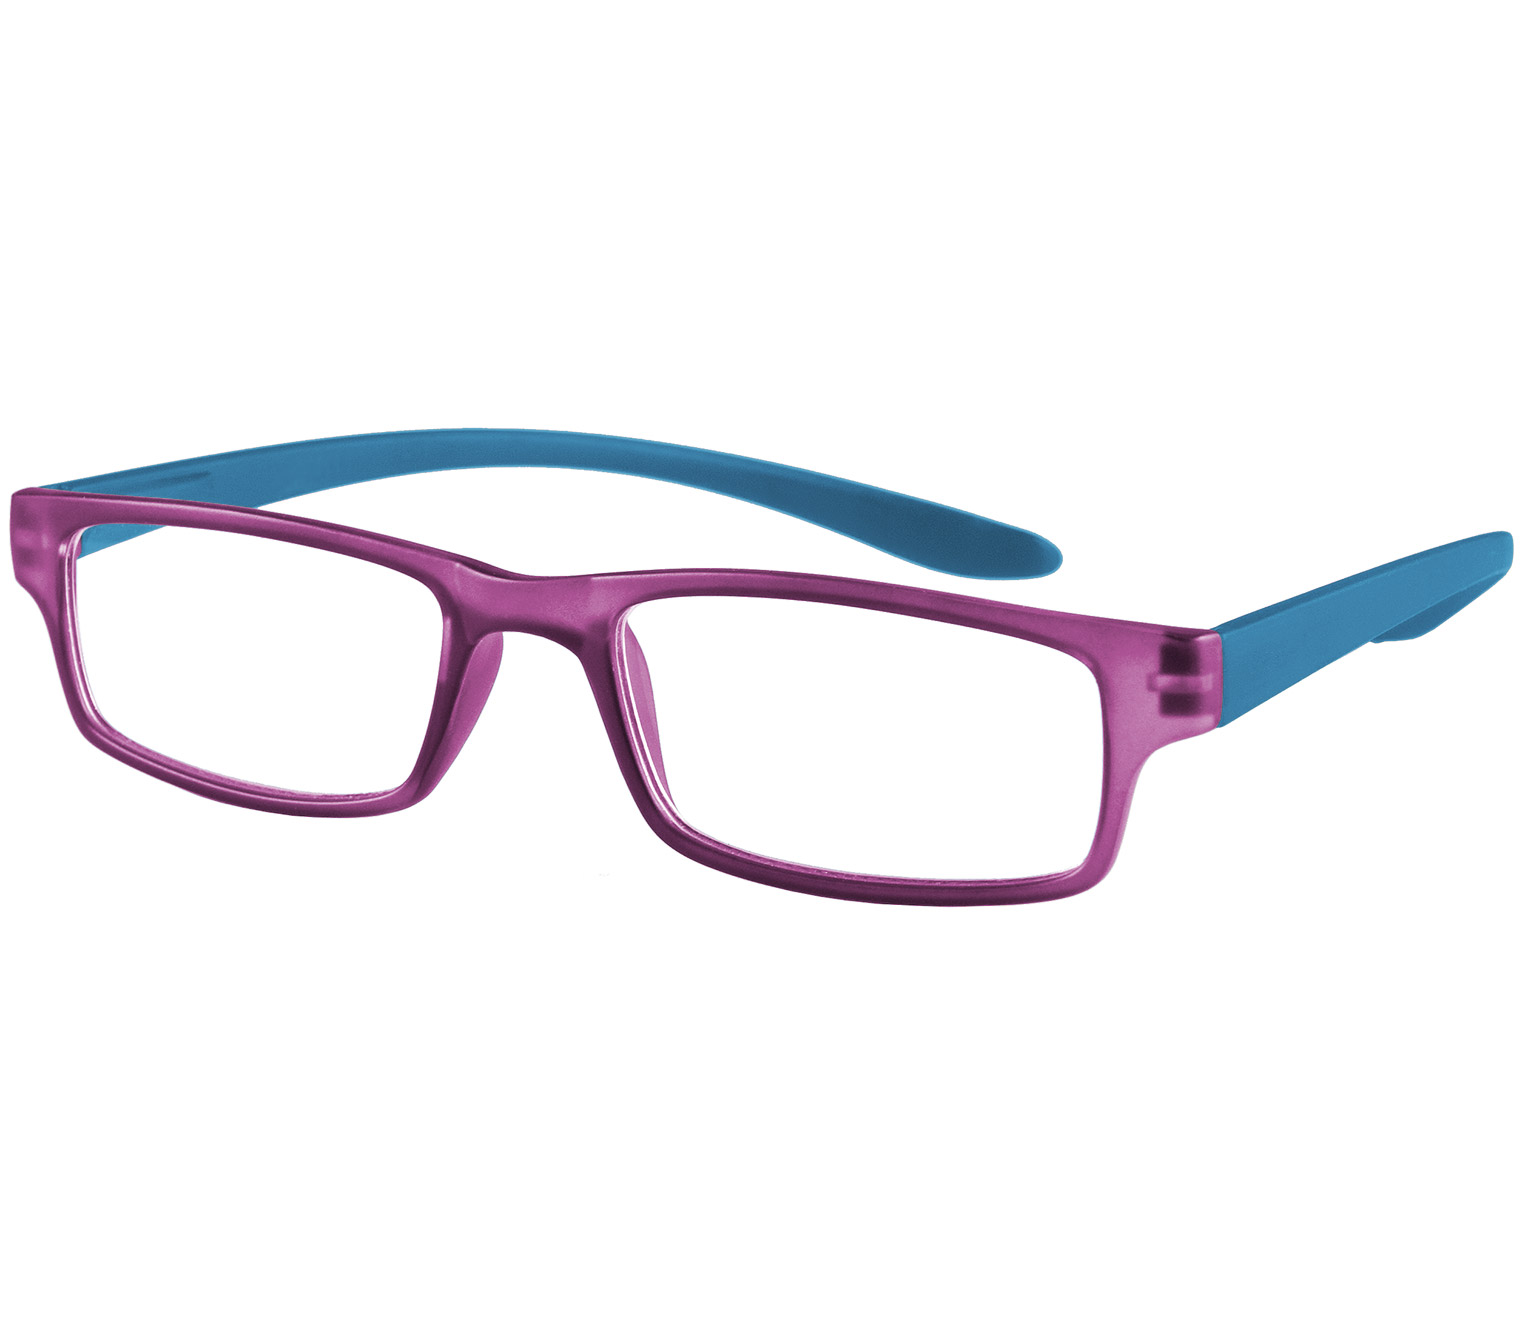 Main Image (Angle) - Swing (Purple) Neck Hanging Reading Glasses